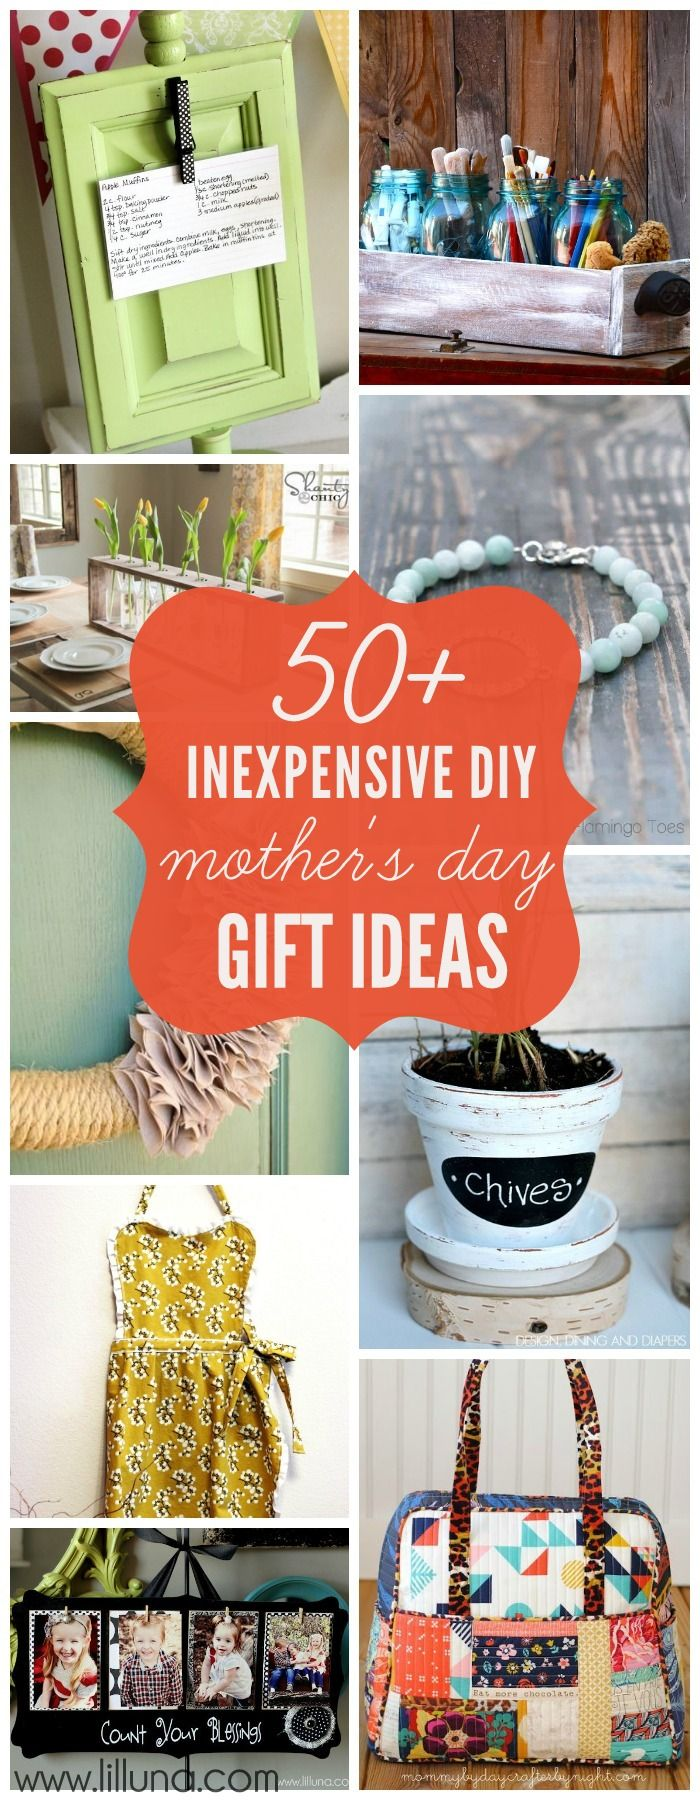 in search of our mothers gardens essay best ideas about being a  best images about mother s day fingerprints inexpensive diy gift ideas perfect for mother s day